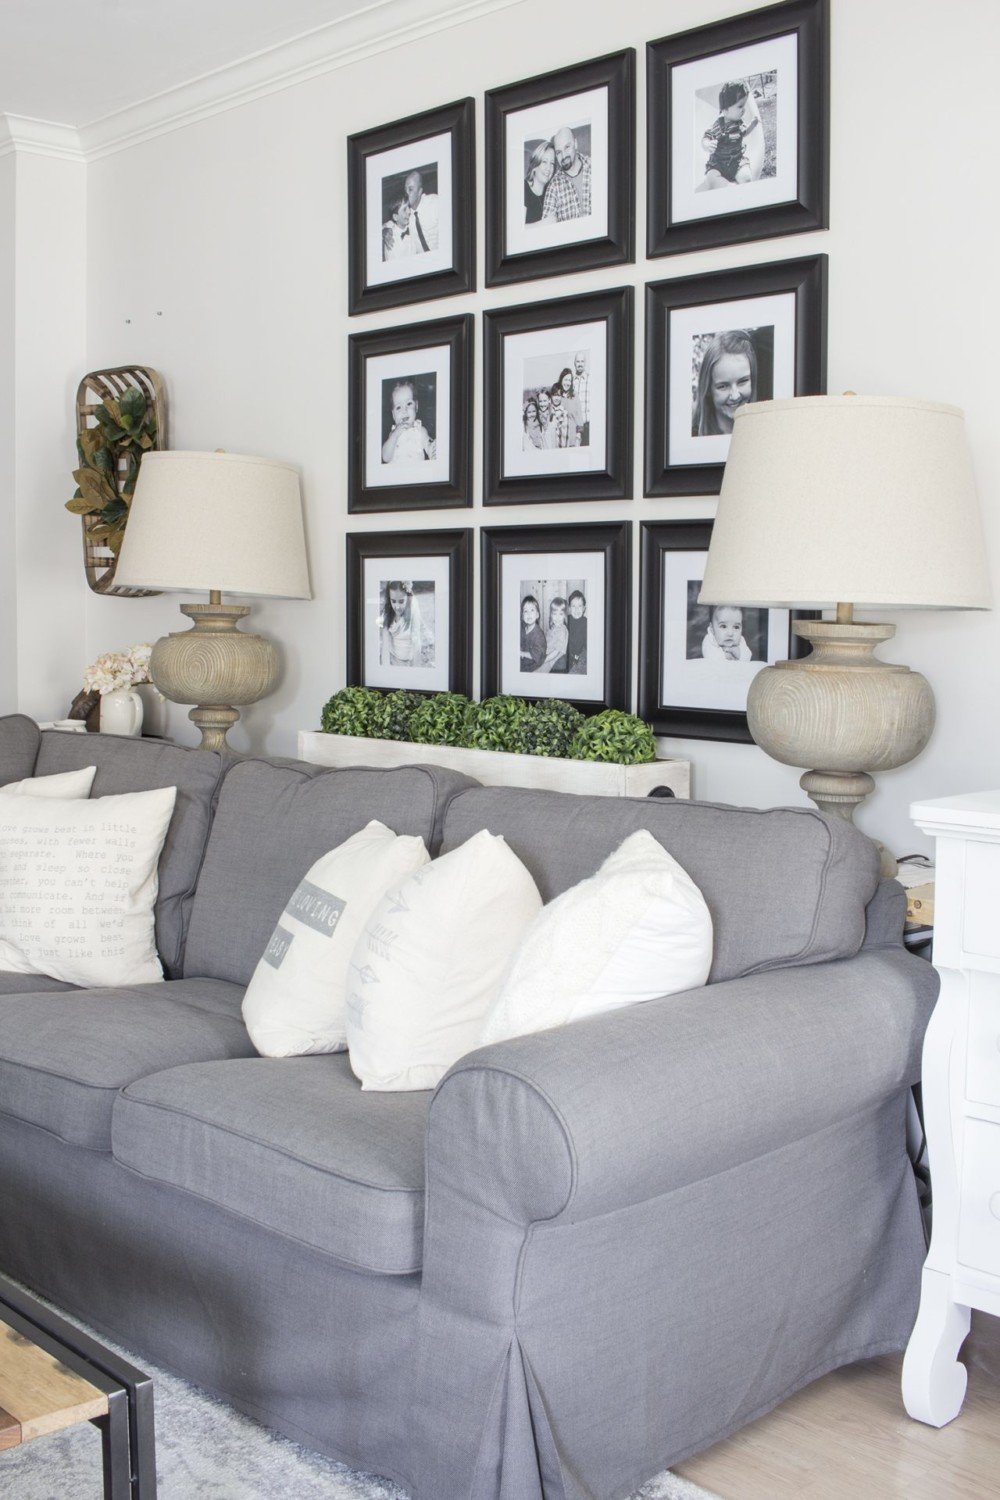 black and white grid gallery wall behind sectional couch to illustrate extra large wall art idea